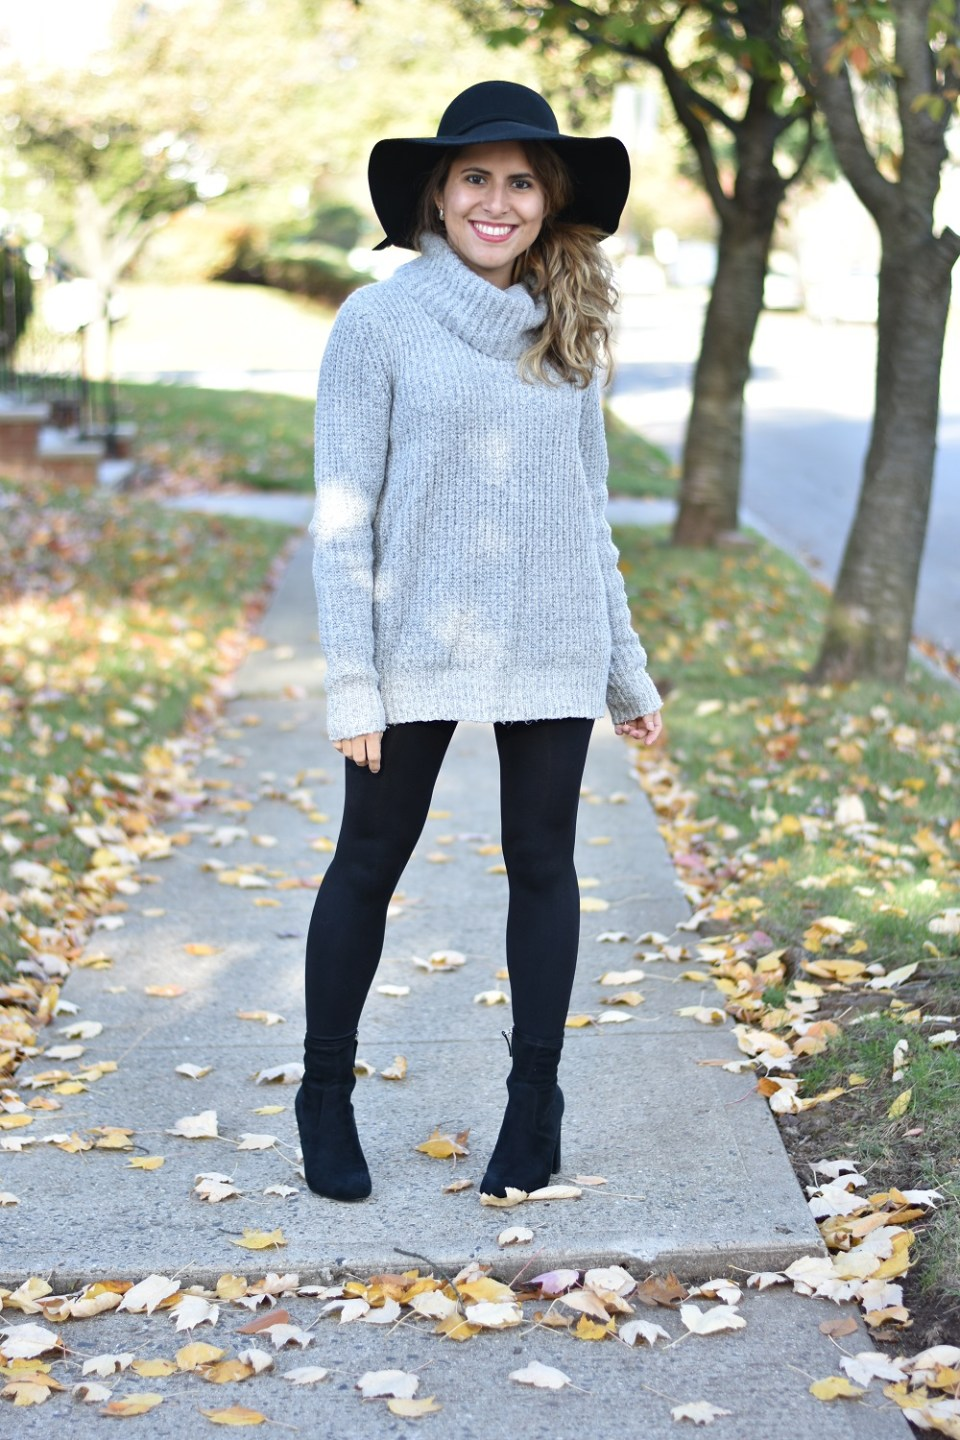 How to Style a Turtleneck Sweater (2 of 2)